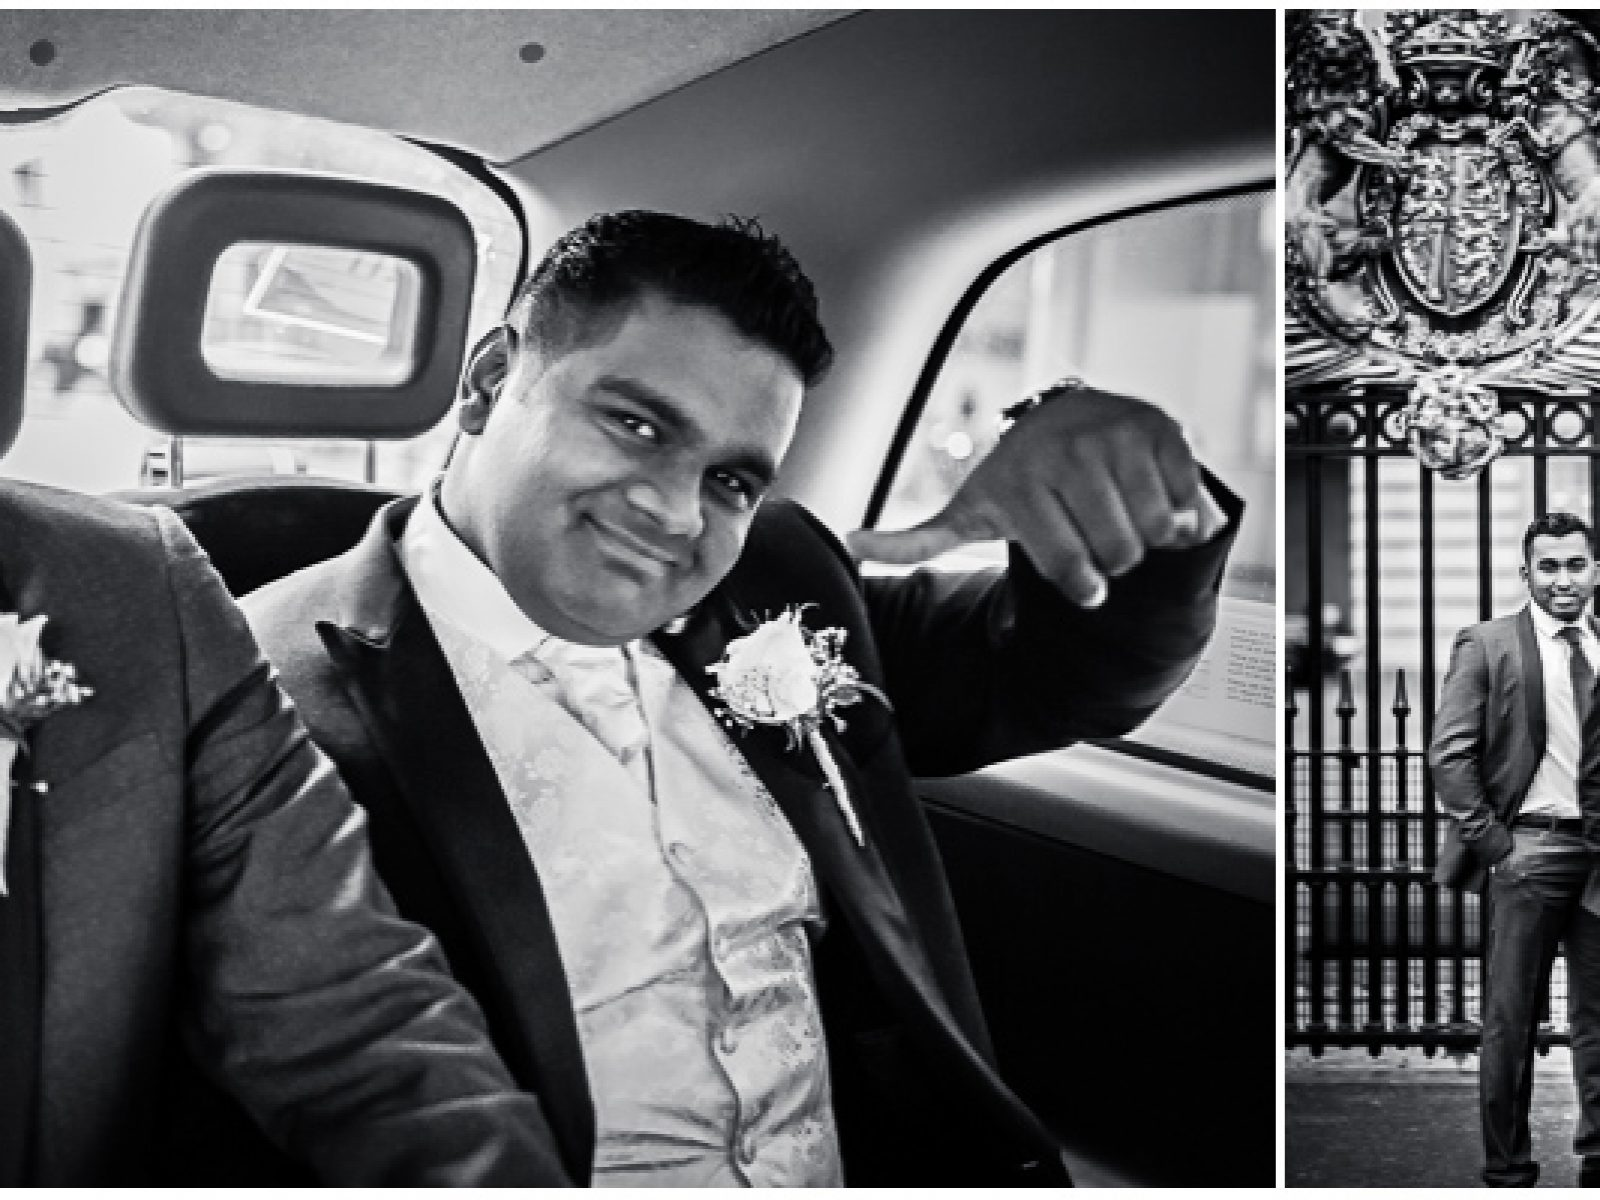 291 1600x1200 - Darshani and Anthony - wedding photographer in London